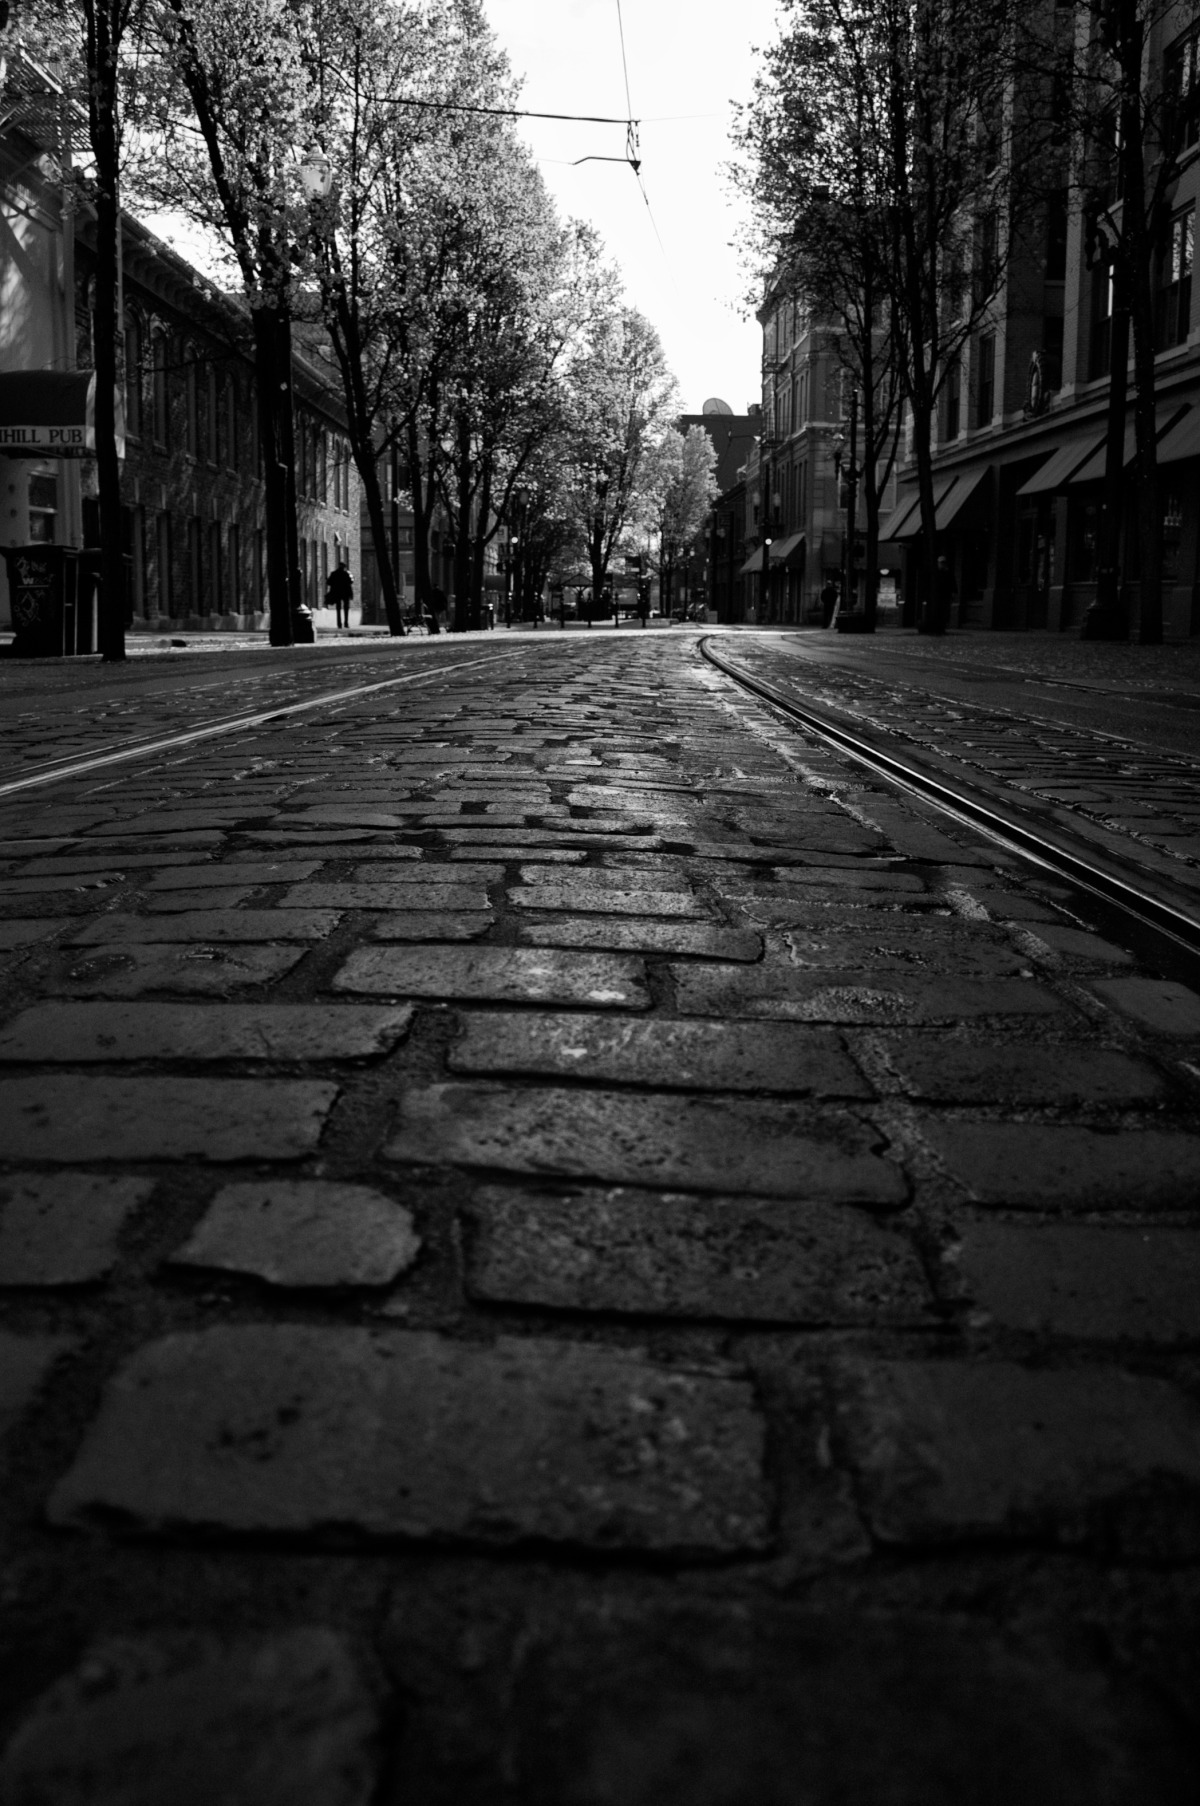 2010-03-10 at 10-37-11 street, cobblestones, tracks, train, black & white, city, urban, portland.jpg